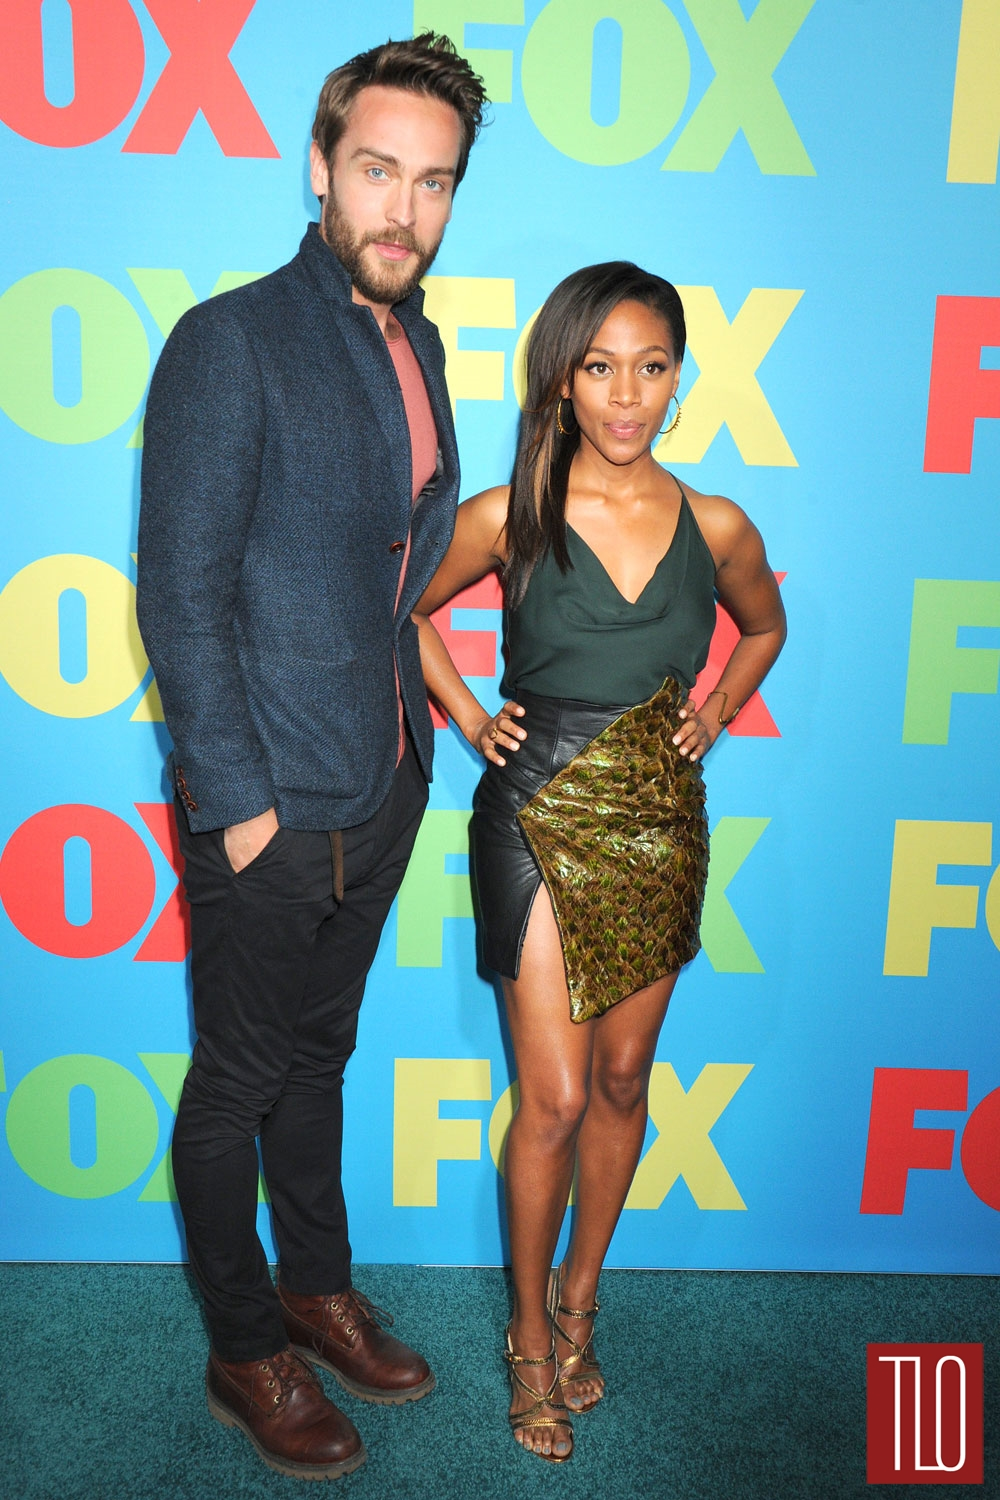 Nicole Beharie Boyfriend 2014 | www.galleryhip.com - The ... Michael Fassbender Updates